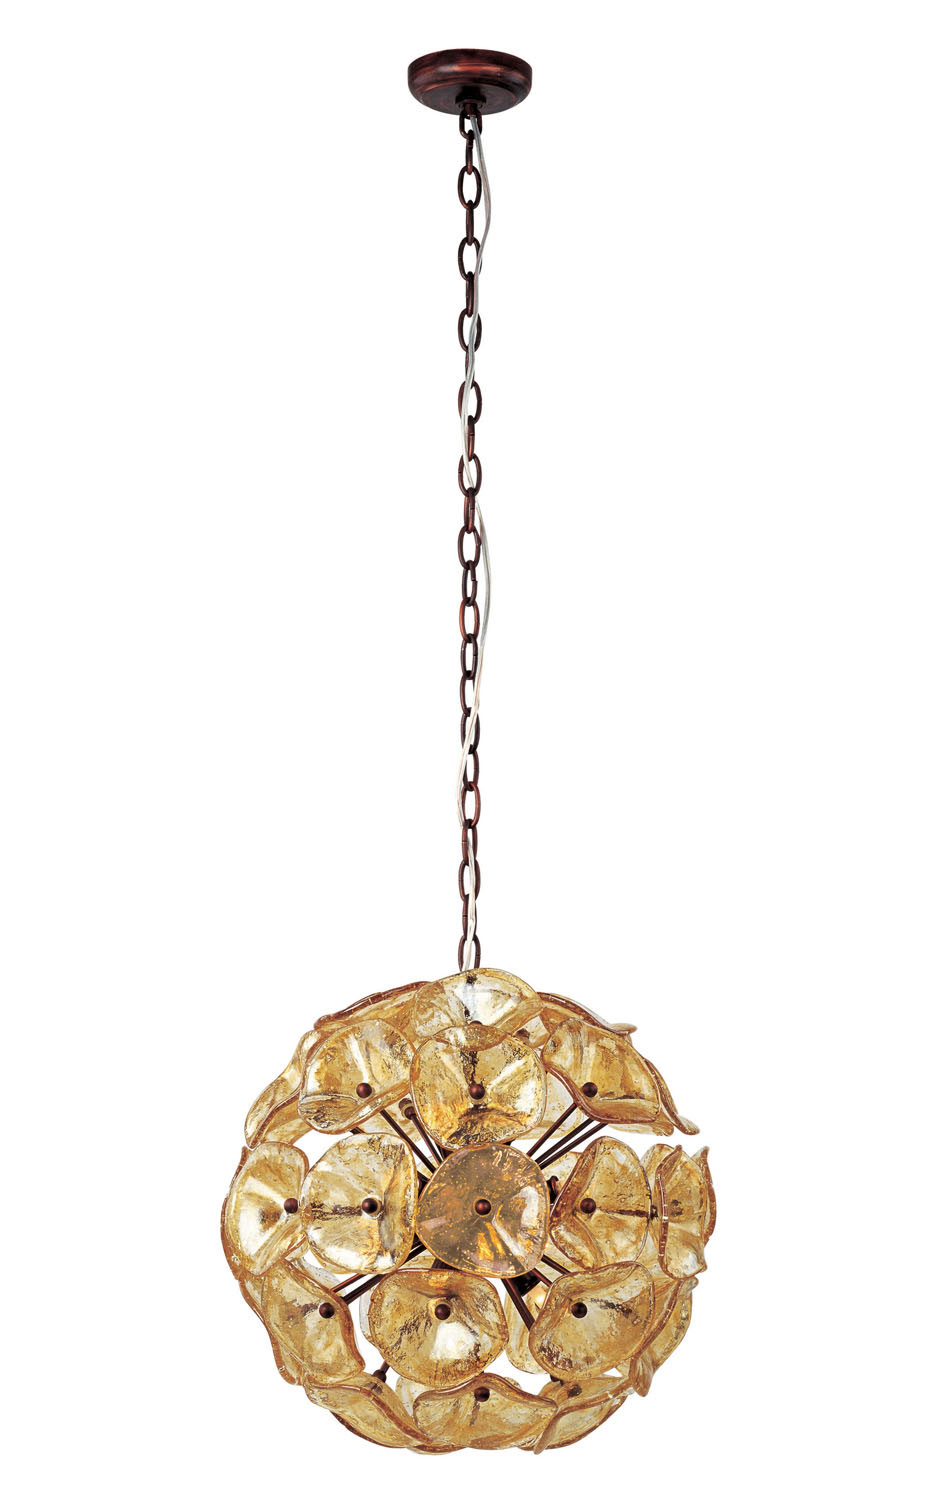 12 Light Pendant from the Fiori collection by ET2 E22093 26